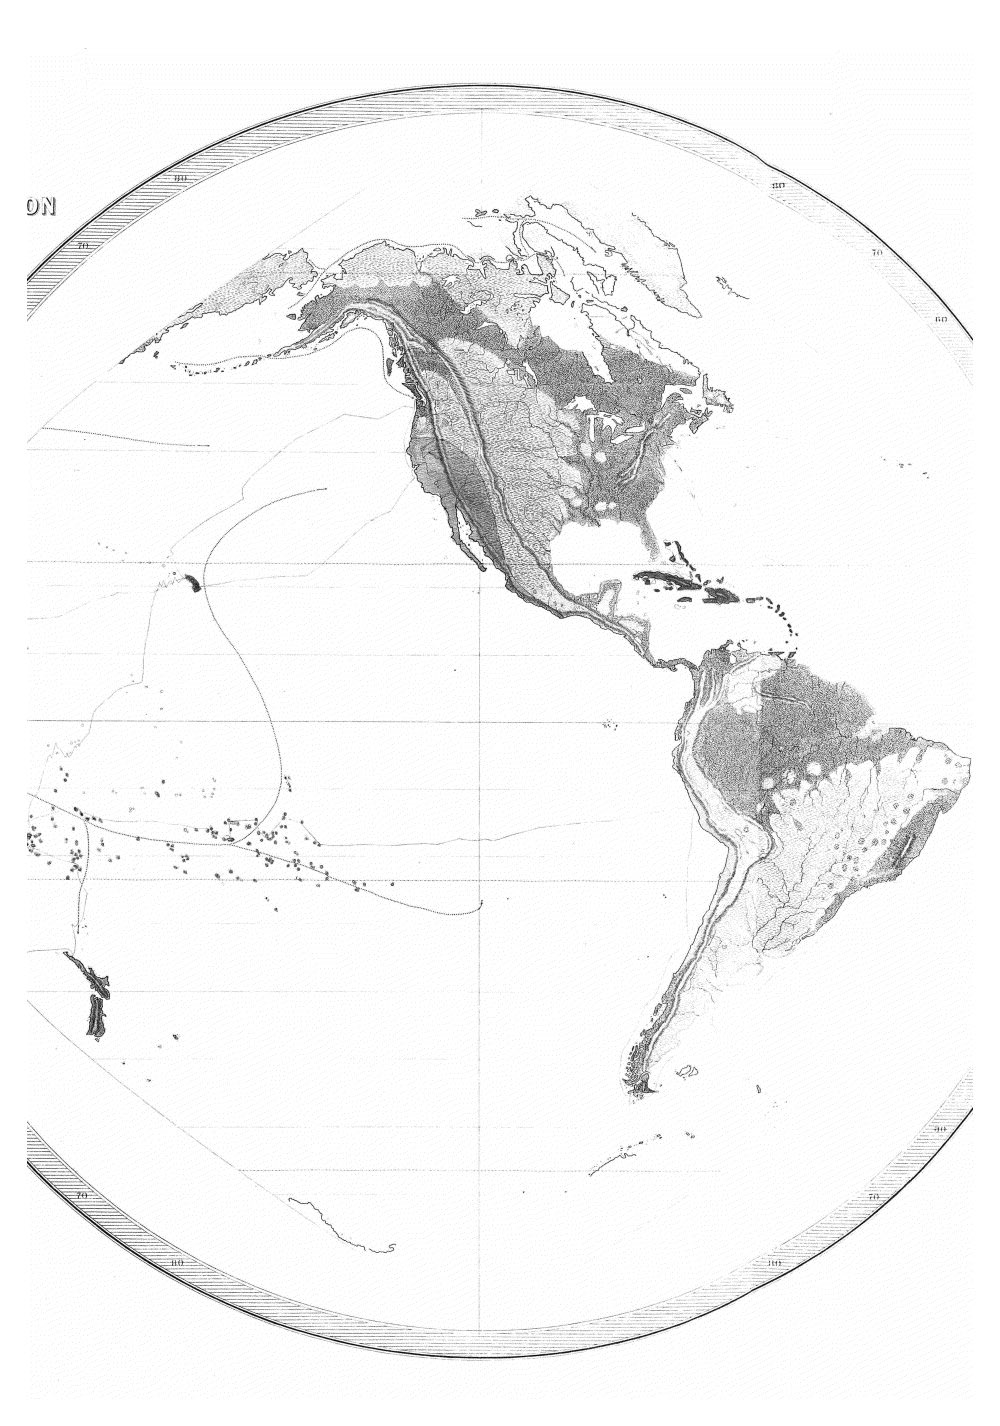 Geographical Distribution of the Races of Men. by C. Pickering U.S. Ex. Ex. 1845,  Image number:Sil19-13-016